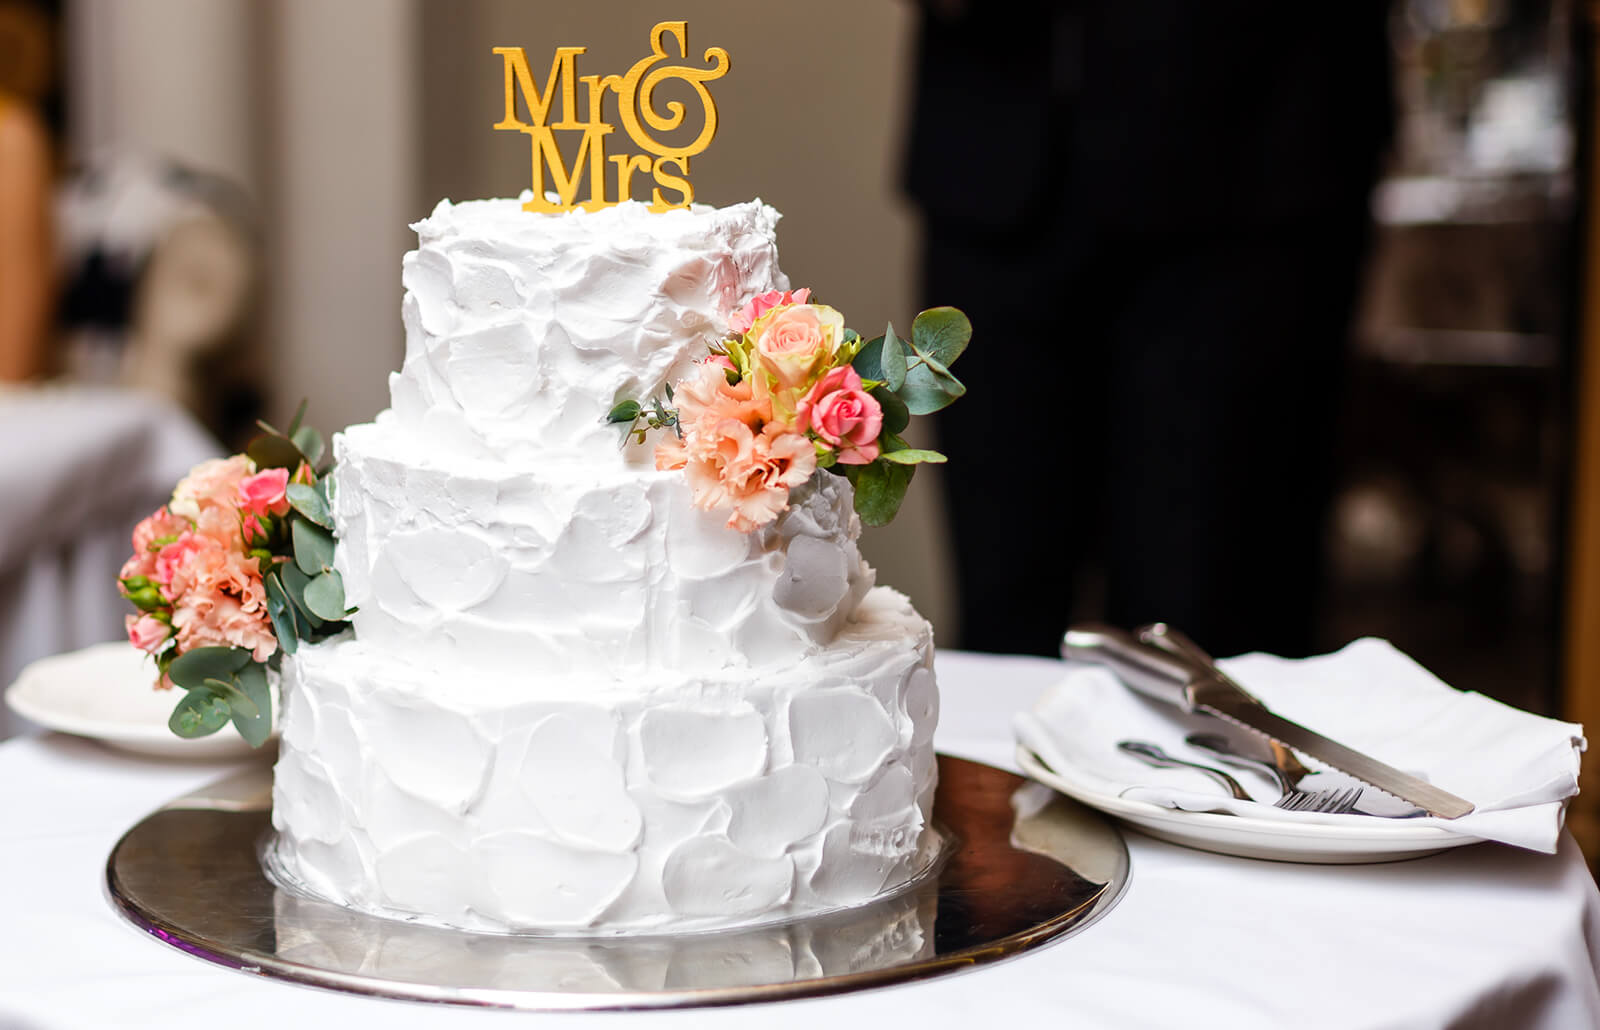 Images of Three,Tier Wedding Cakes